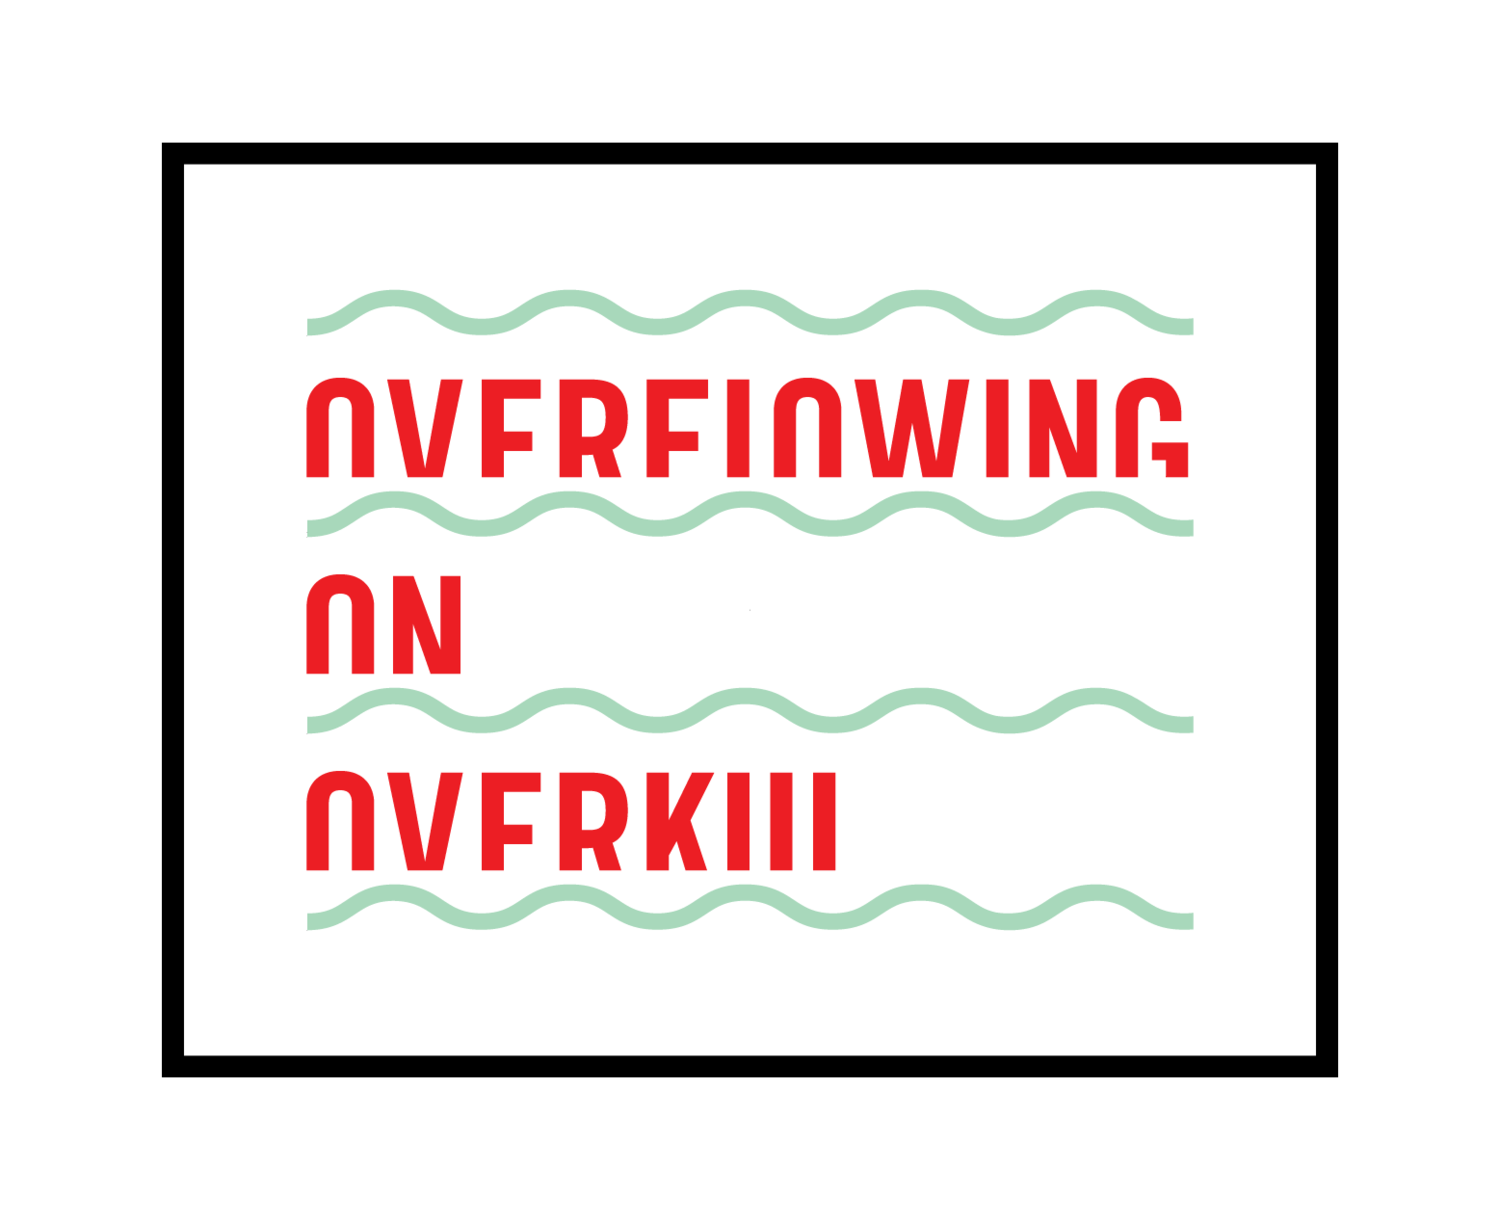 overflowing on overkill ™